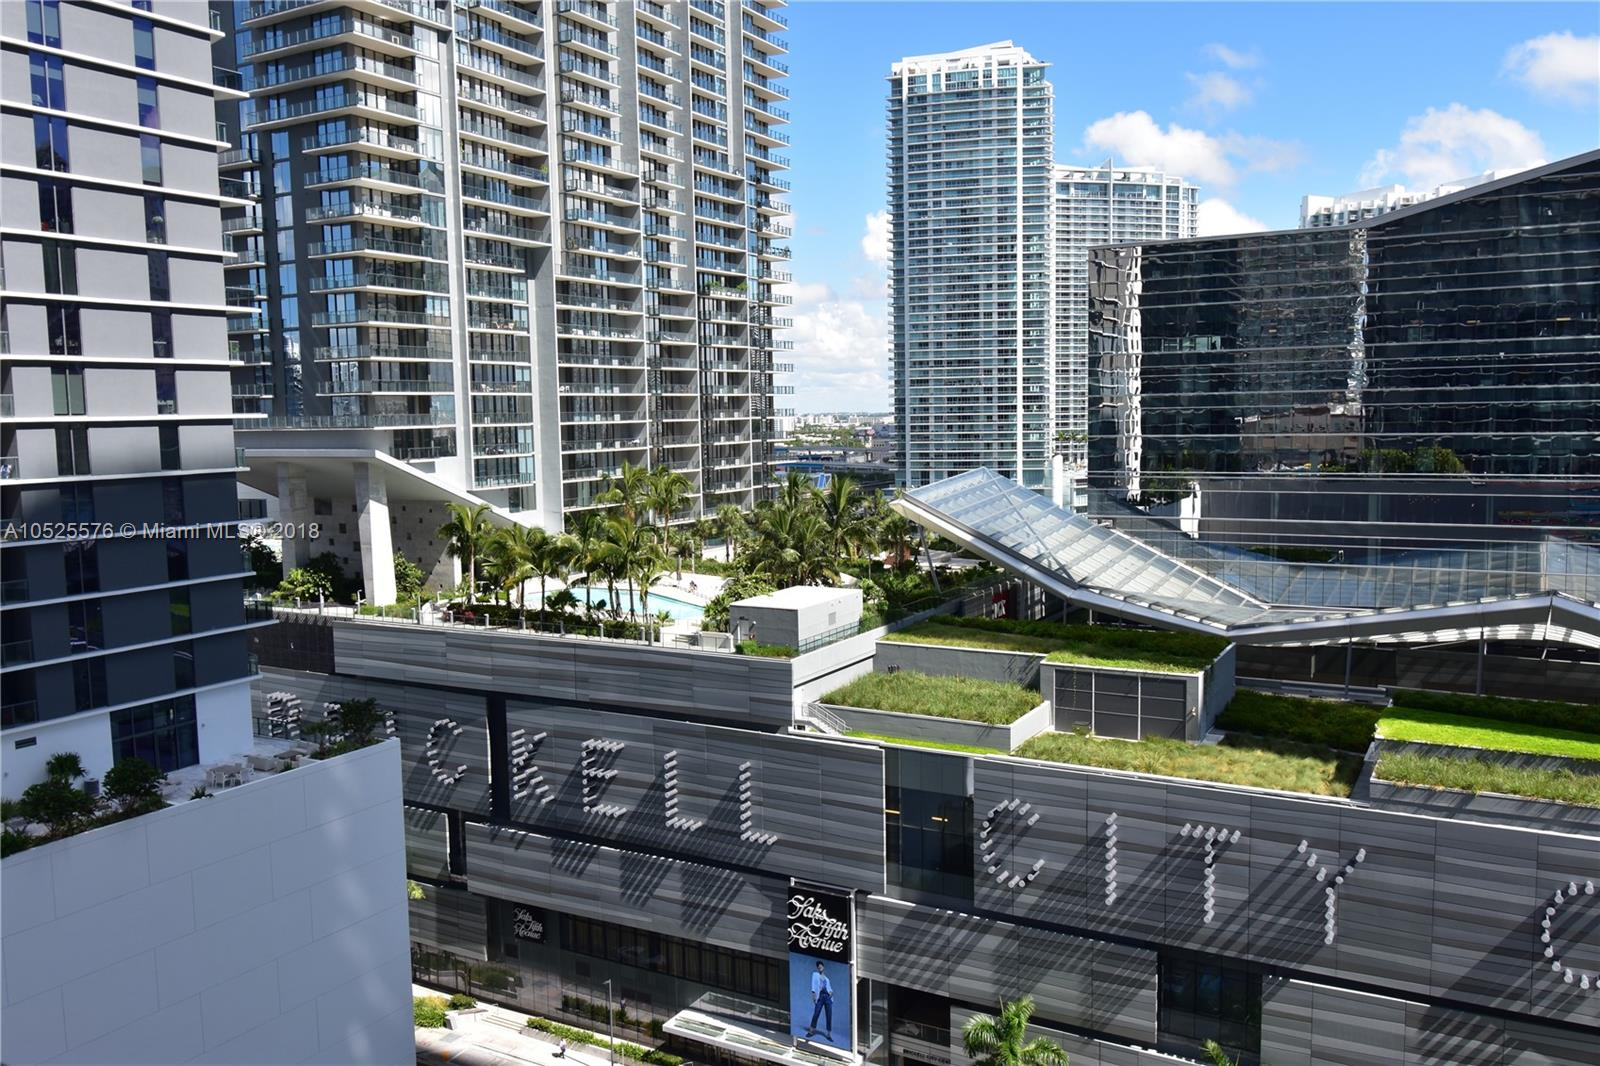 BRICKELL HEIGHTS condo for sale. North view, large 151 SF balcony with city views, floor-to-ceiling windows, modern kitchen and trendy. BRICKELL HEIGHTS offers all modern amenities included a roof-top sky-pool in the 50th floor with amazing city-and ocean views. Building include basic cable, High Speed internet. Walking distance to the trendiest restaurants, City Centre Mall & Brickell nightlife. One parking space thru valet. ***Tenant occupied until Sept 19/2021 paying $2100/month***